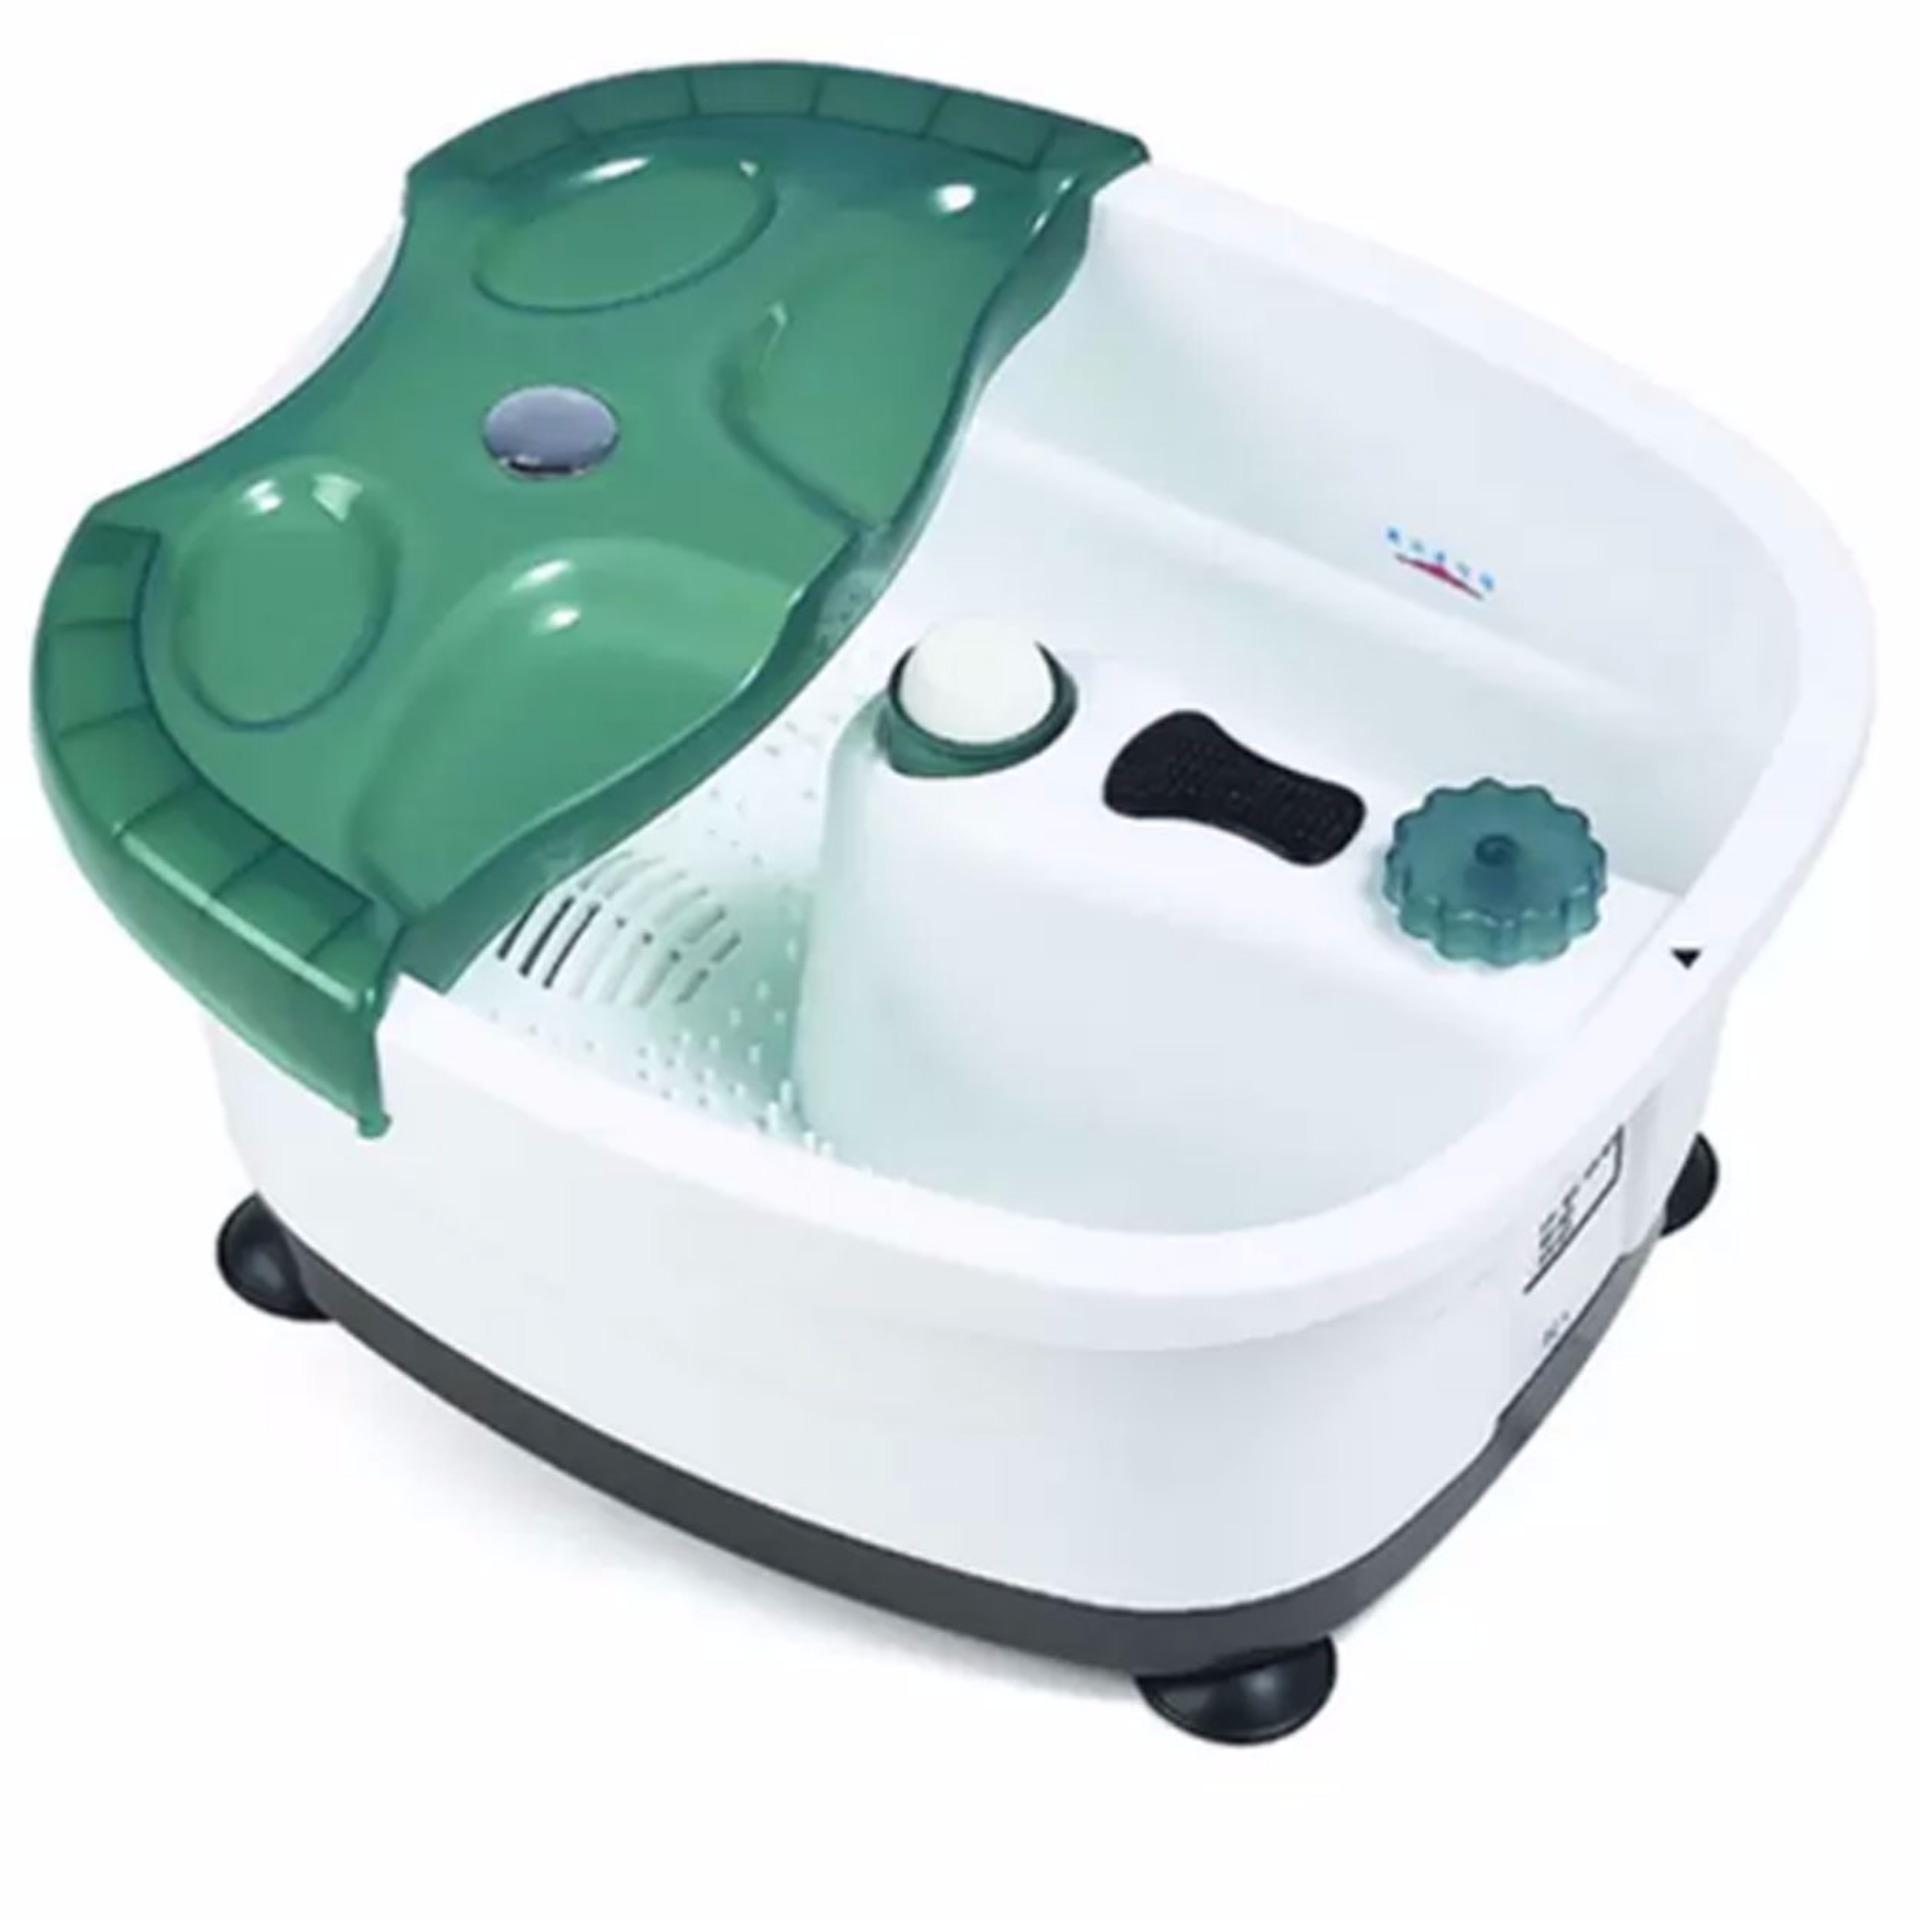 All-in-One Foot Spa Bath Massager (Green) | Lazada PH